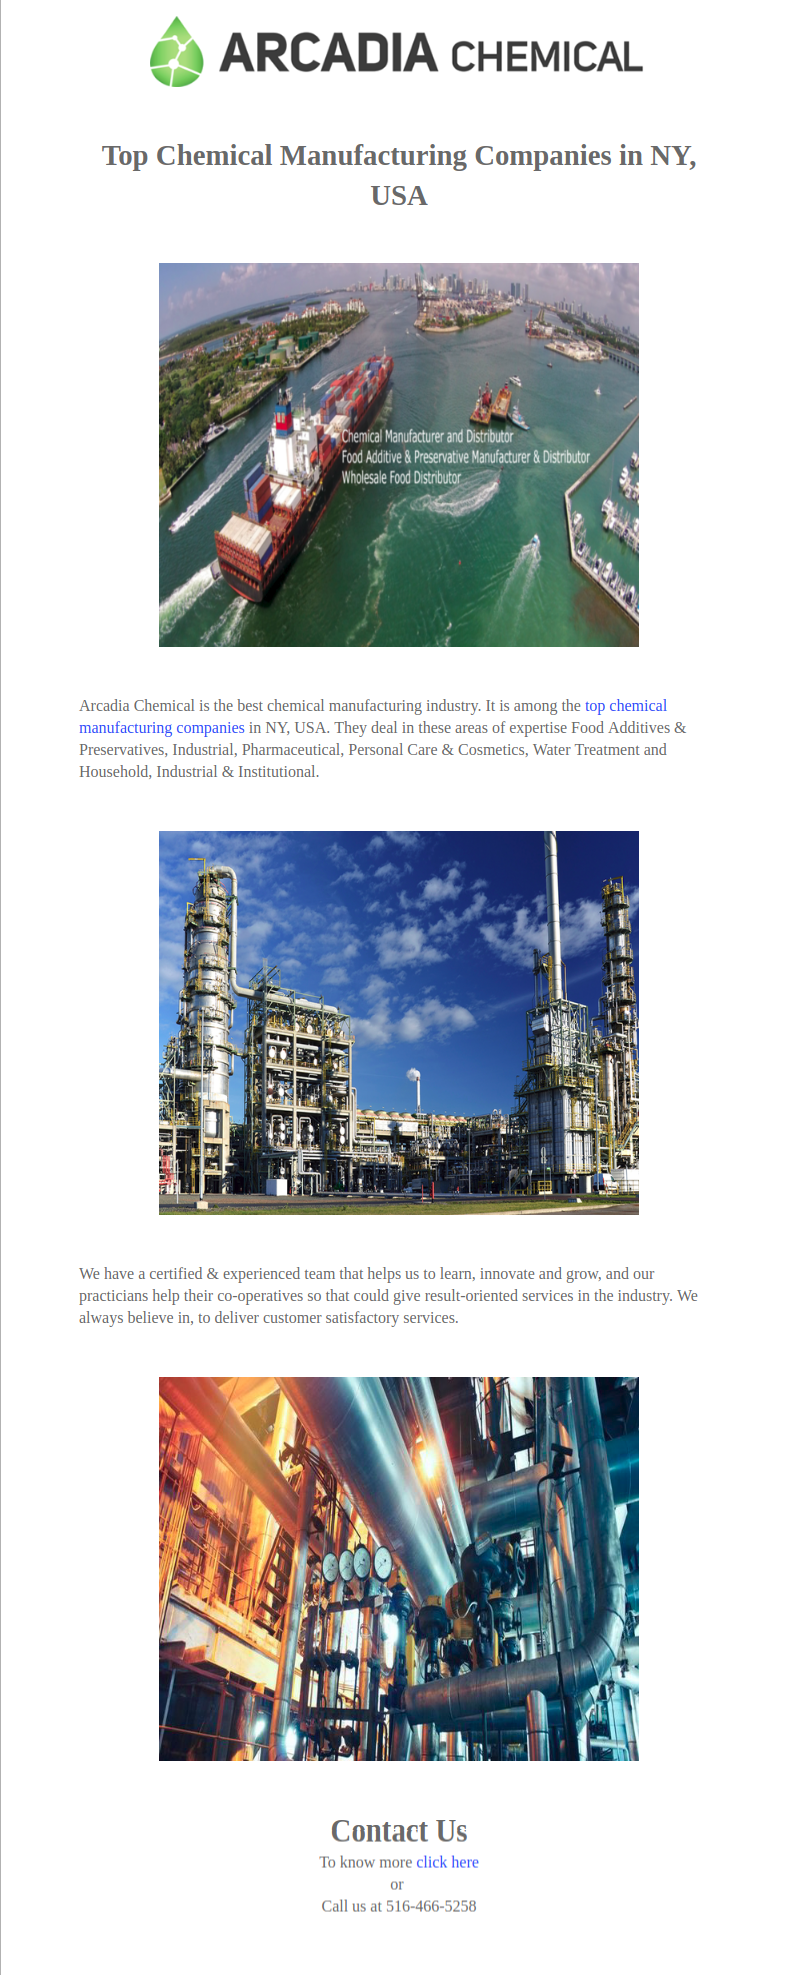 Arcadia Chemical is the best chemical manufacturing